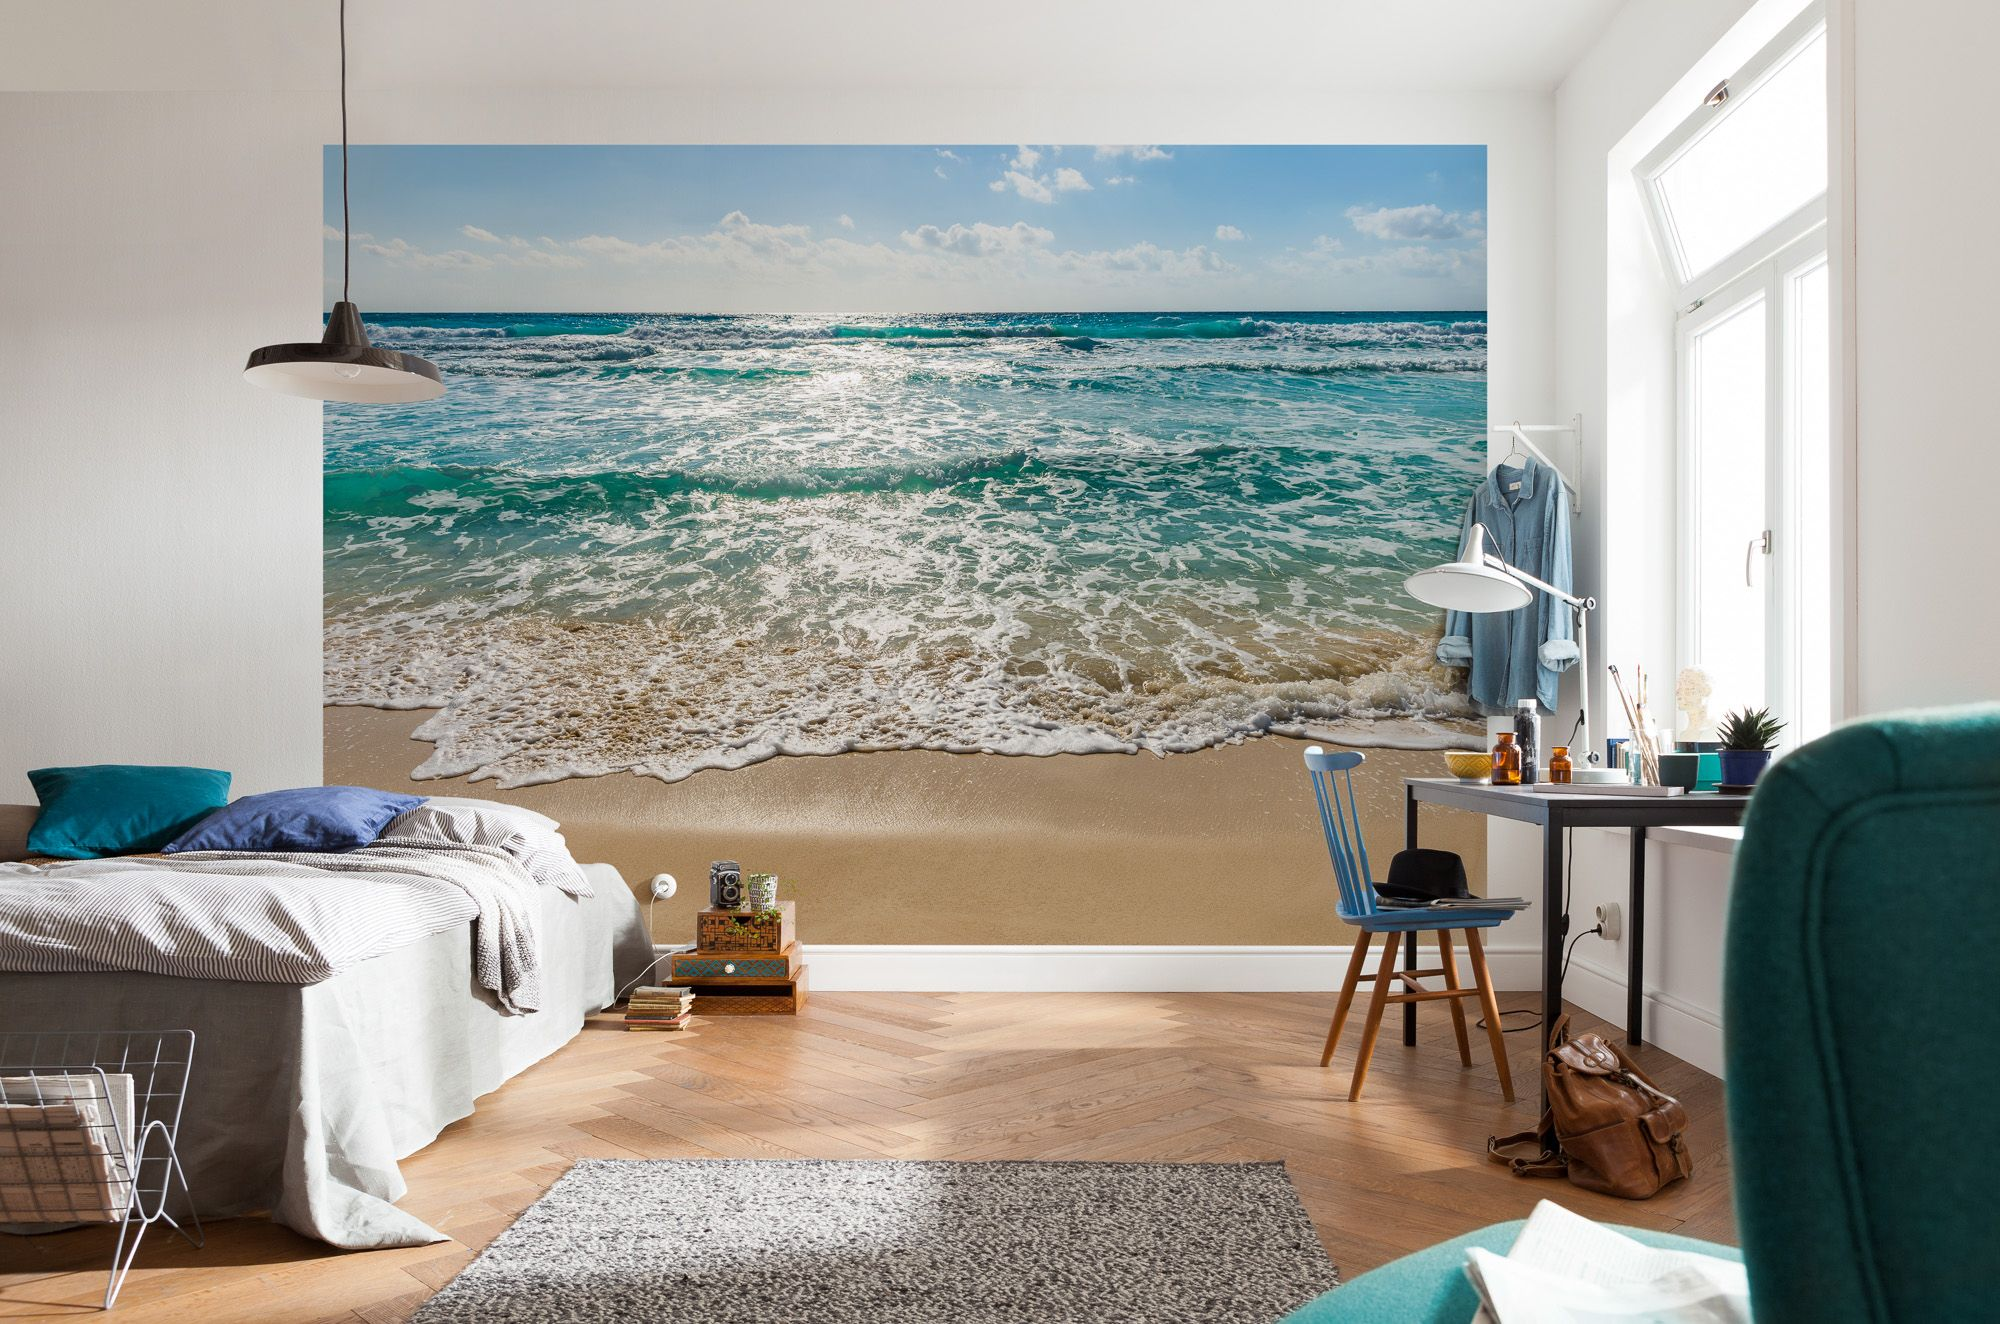 Seaside beach scene paper wallpaper homewallmurals for Beach mural for wall